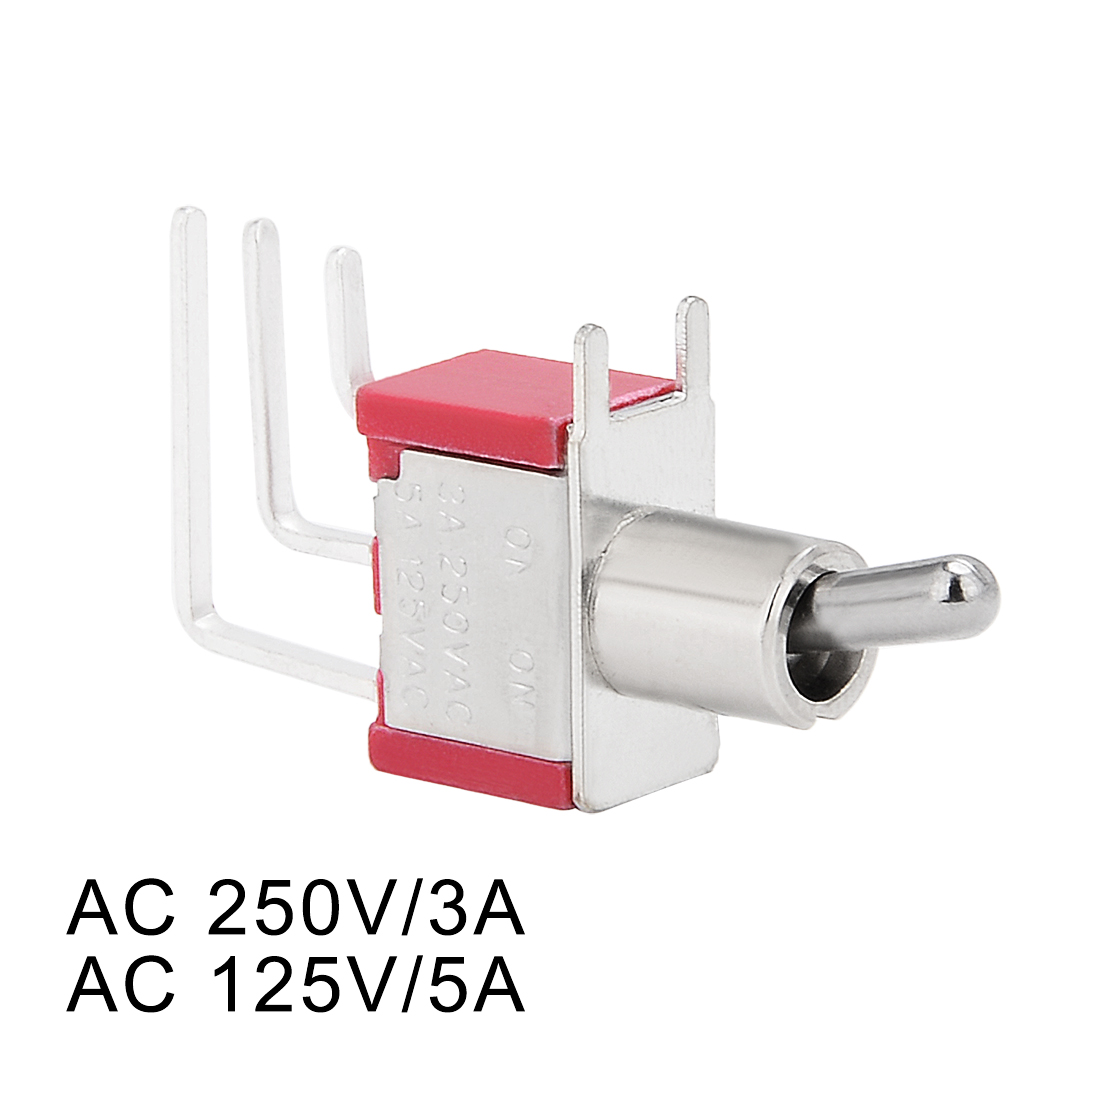 5pcs Ac 250v 3a 125v 5a On Spdt Toggle Switch Side Face Right Switched To The Angled Terminal